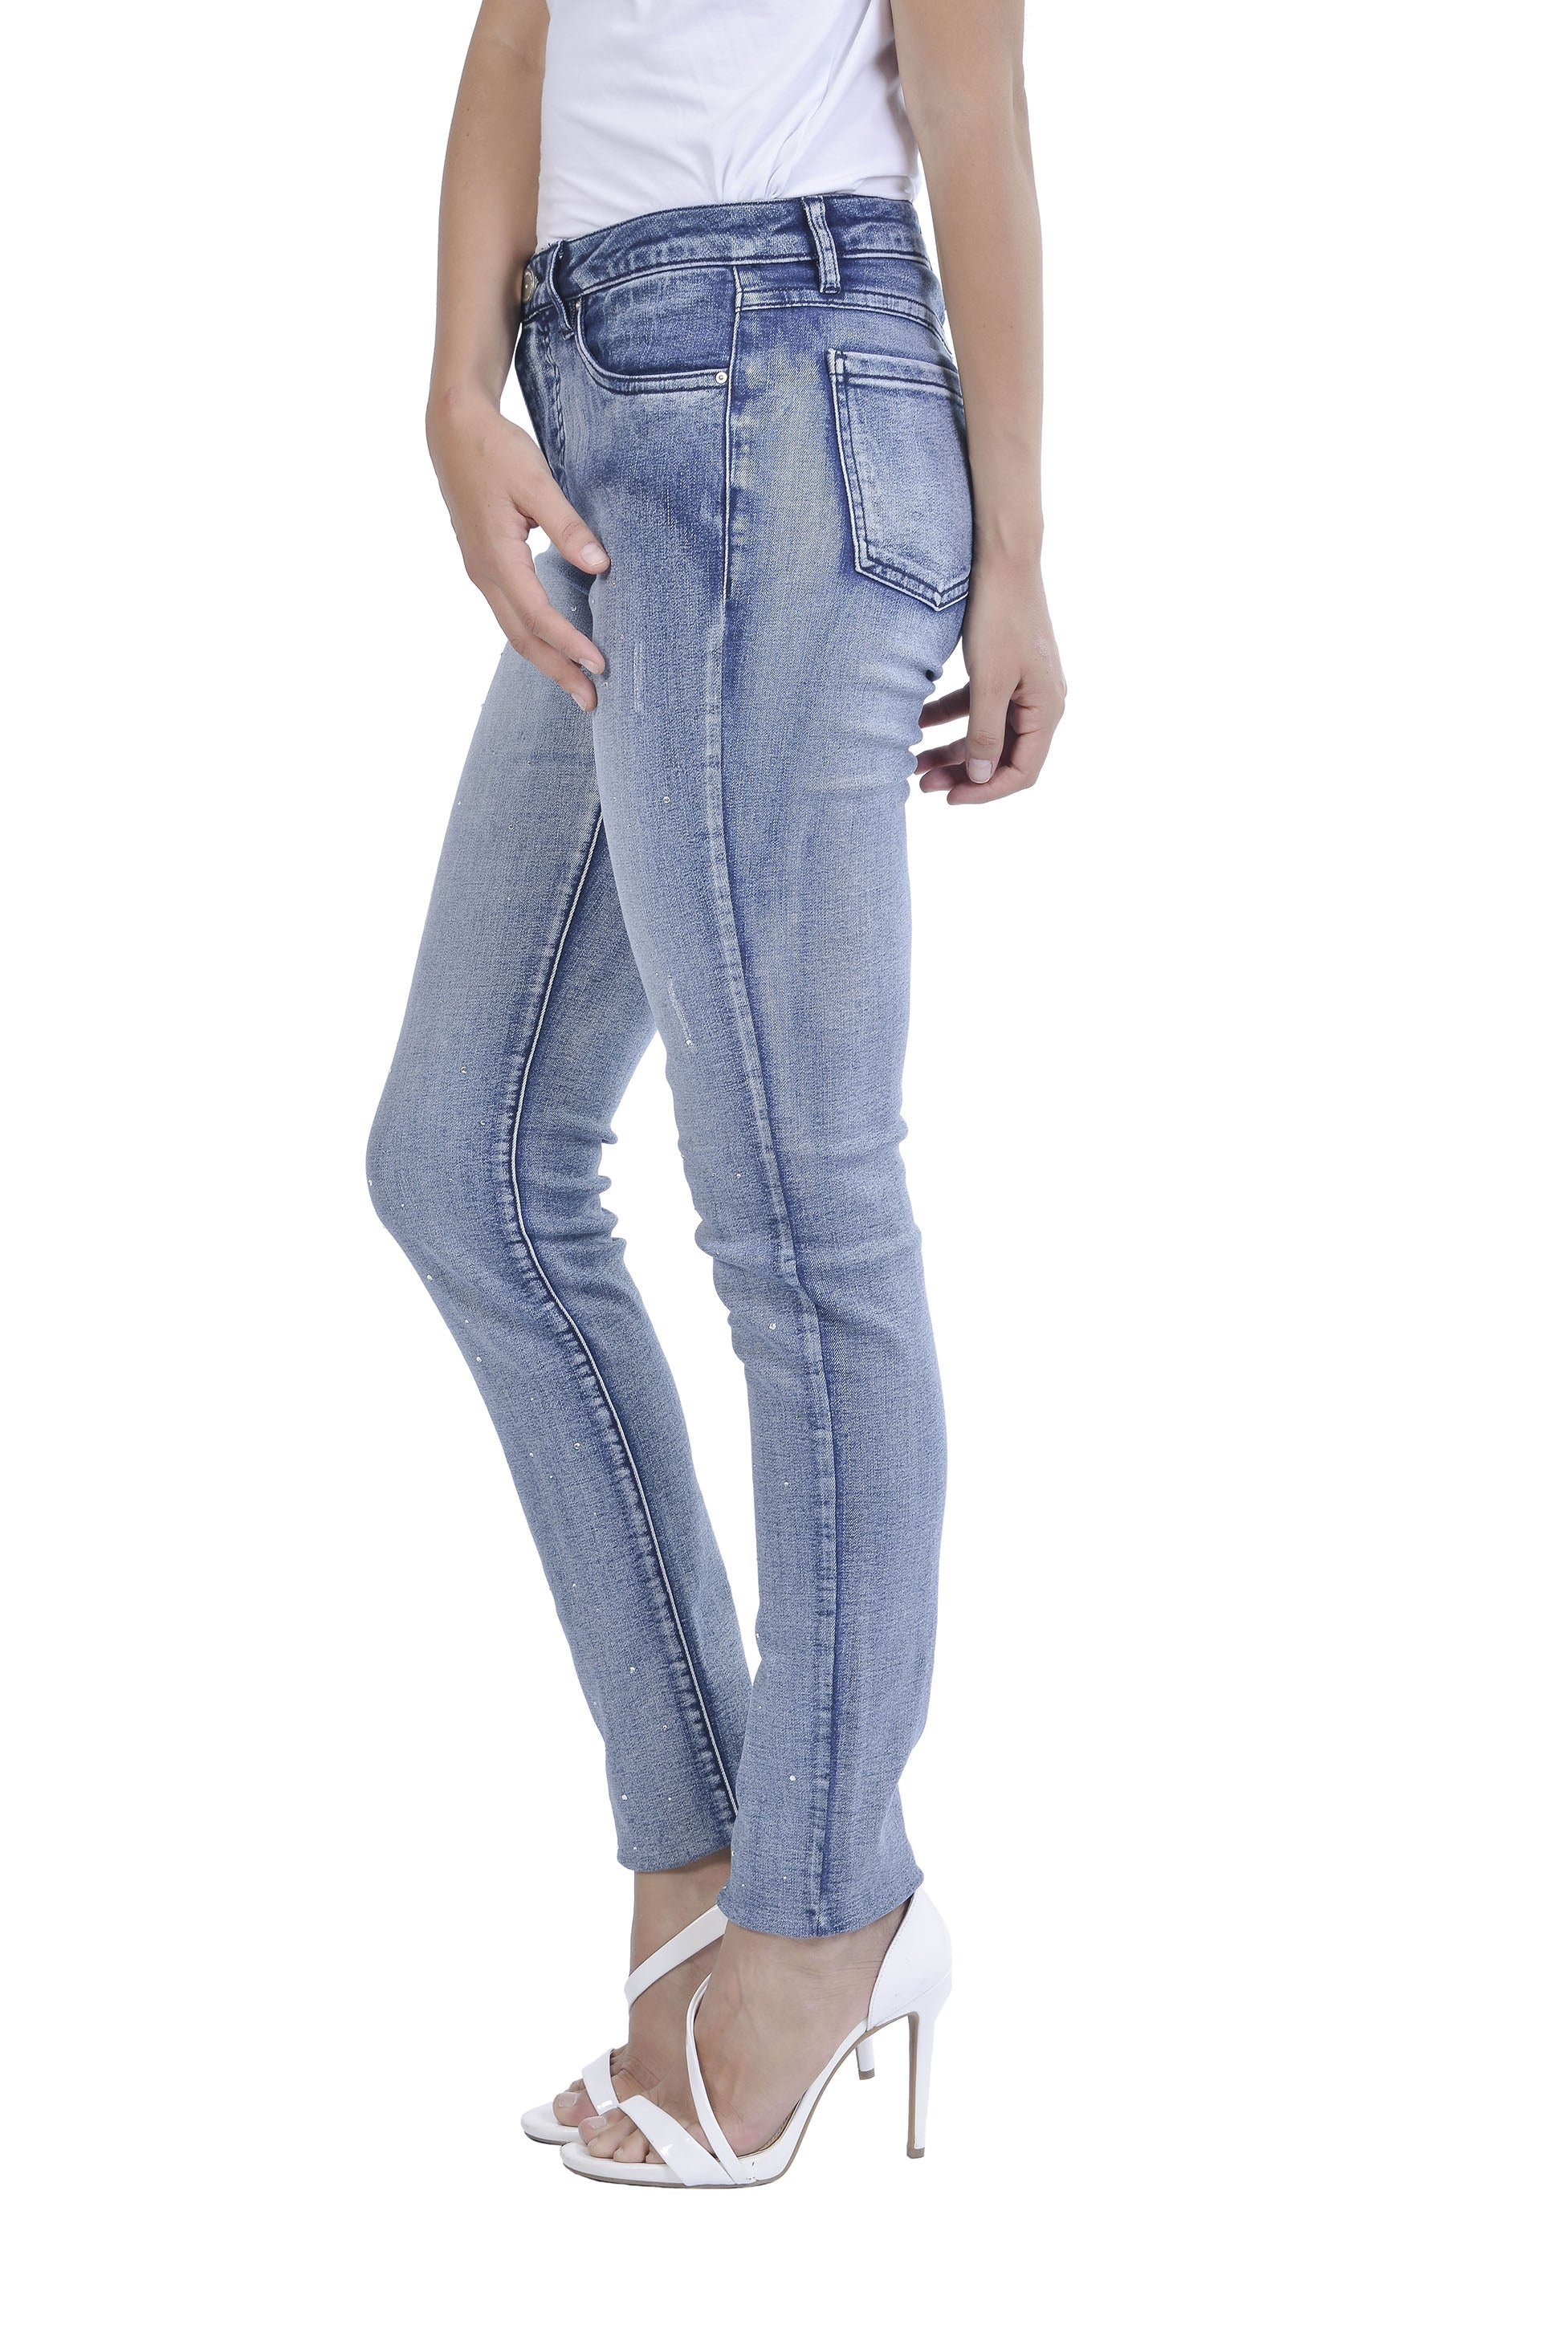 JEANS CORALINE